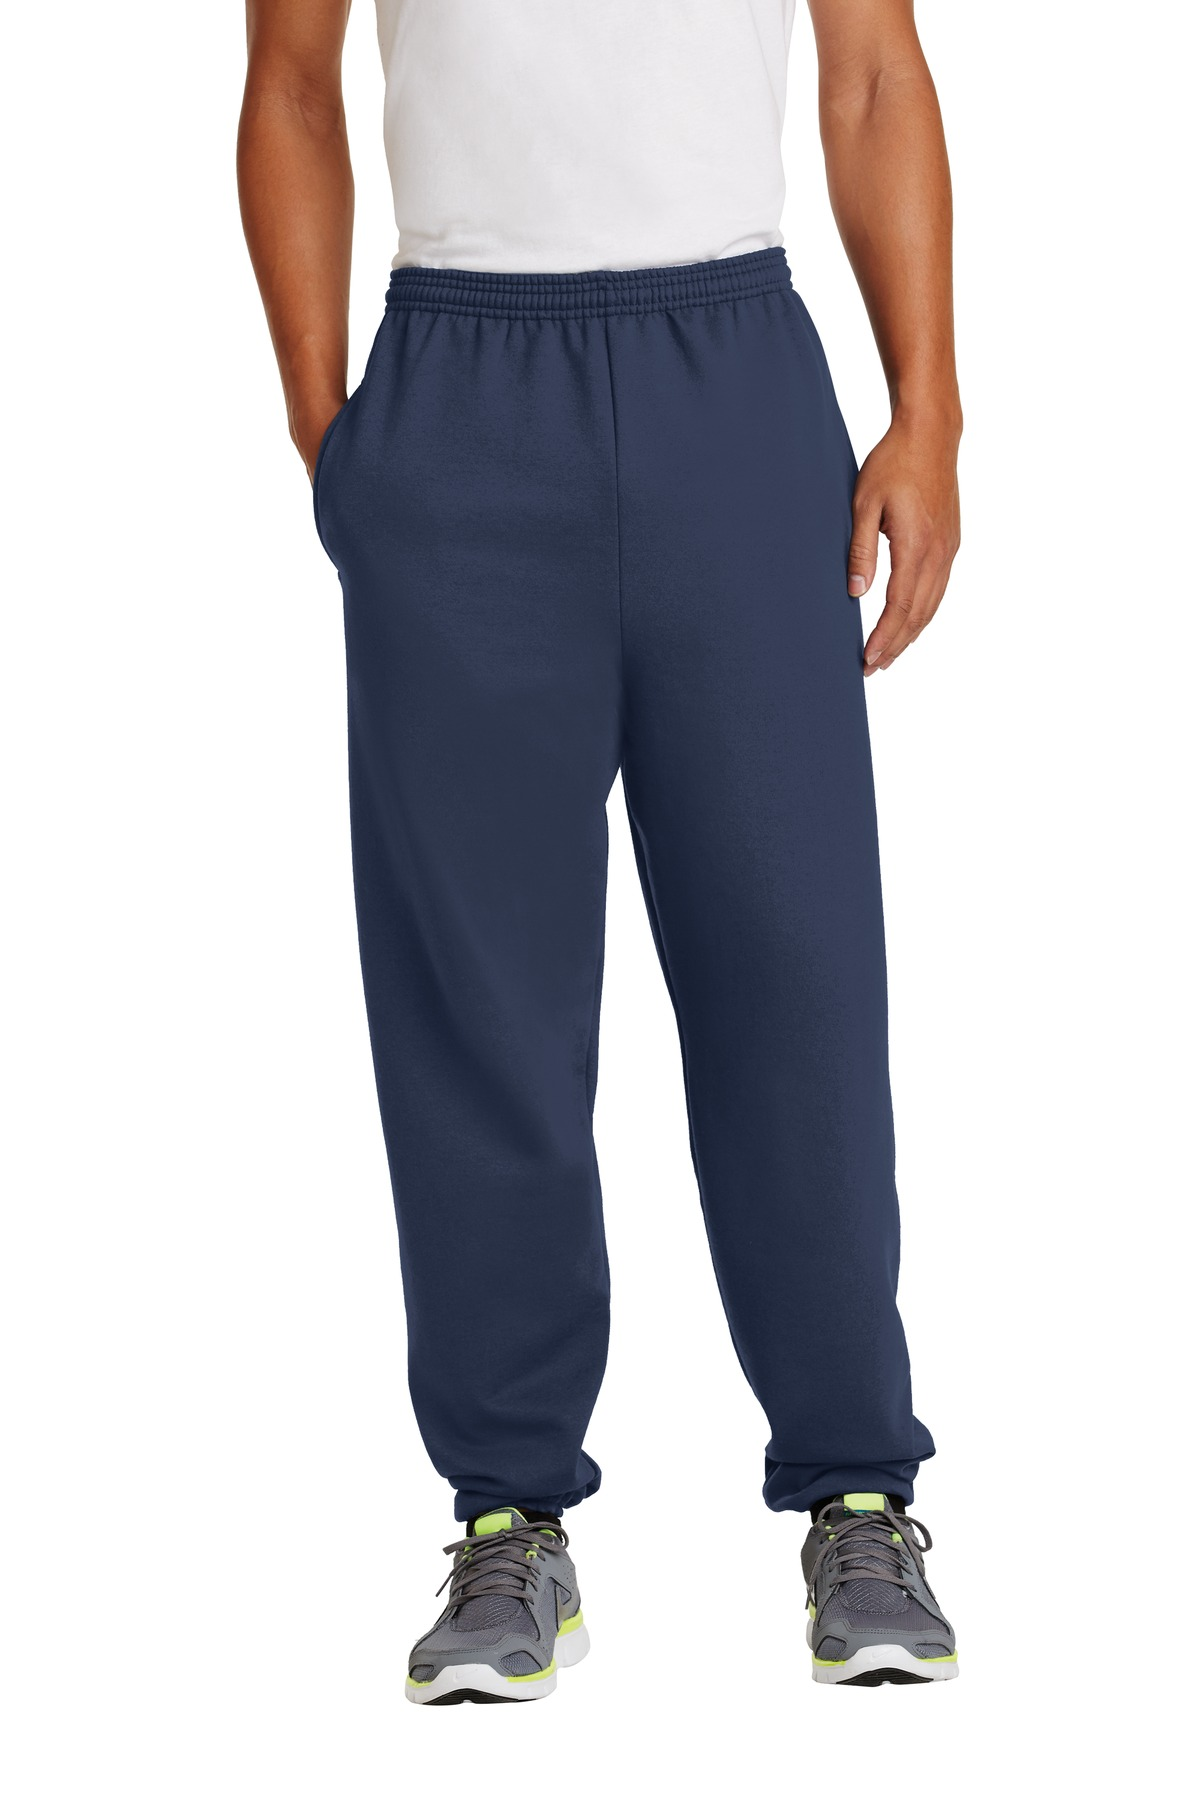 Port & Company ®  - Essential Fleece Sweatpant with Pockets.  PC90P - Navy